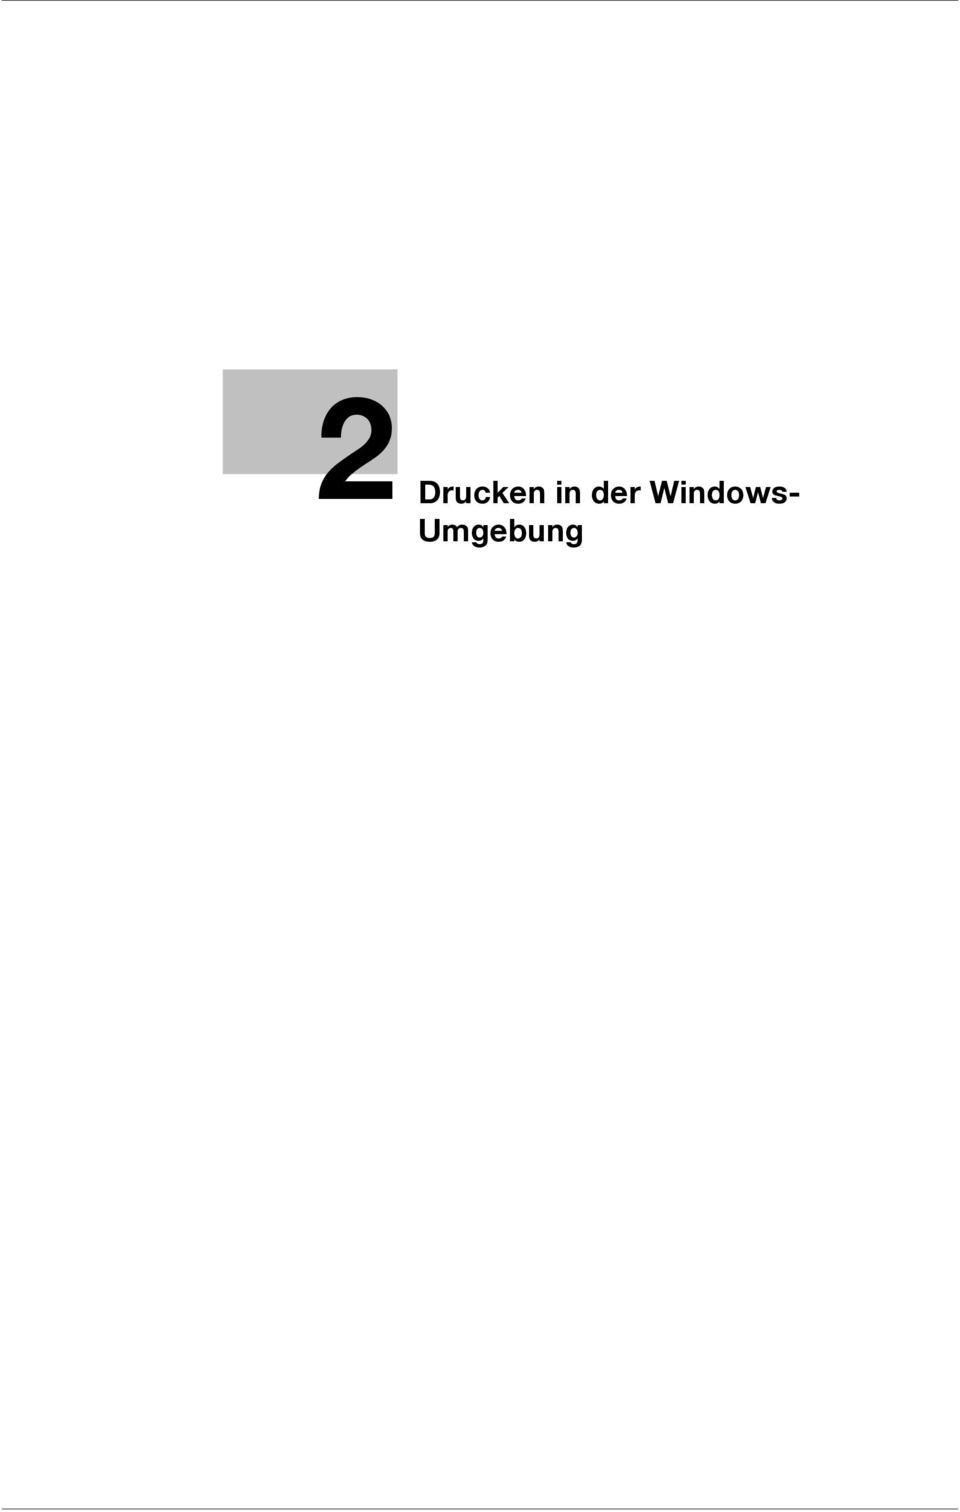 Windows-